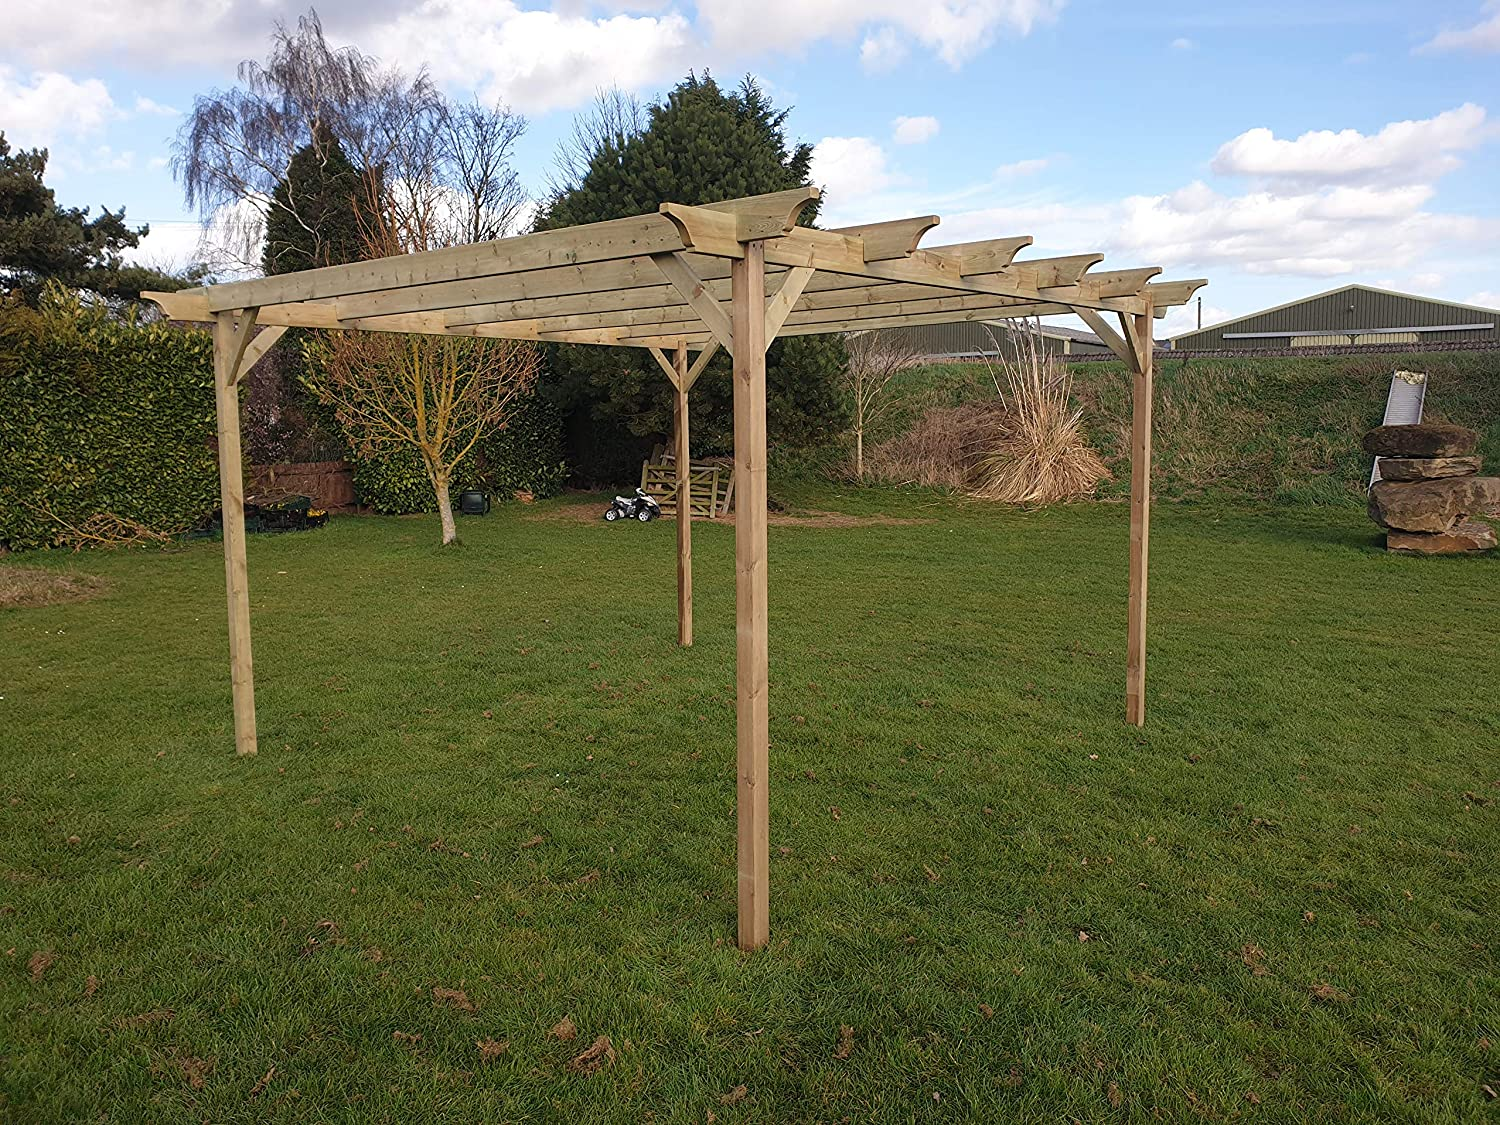 GMS TIMBER LTD Champion - Kit de pérgola de jardín de Madera - Exclusiva Gama de pérgola - más Grande en Amazon - Acabado Verde Claro o marrón rústico: Amazon.es: Jardín